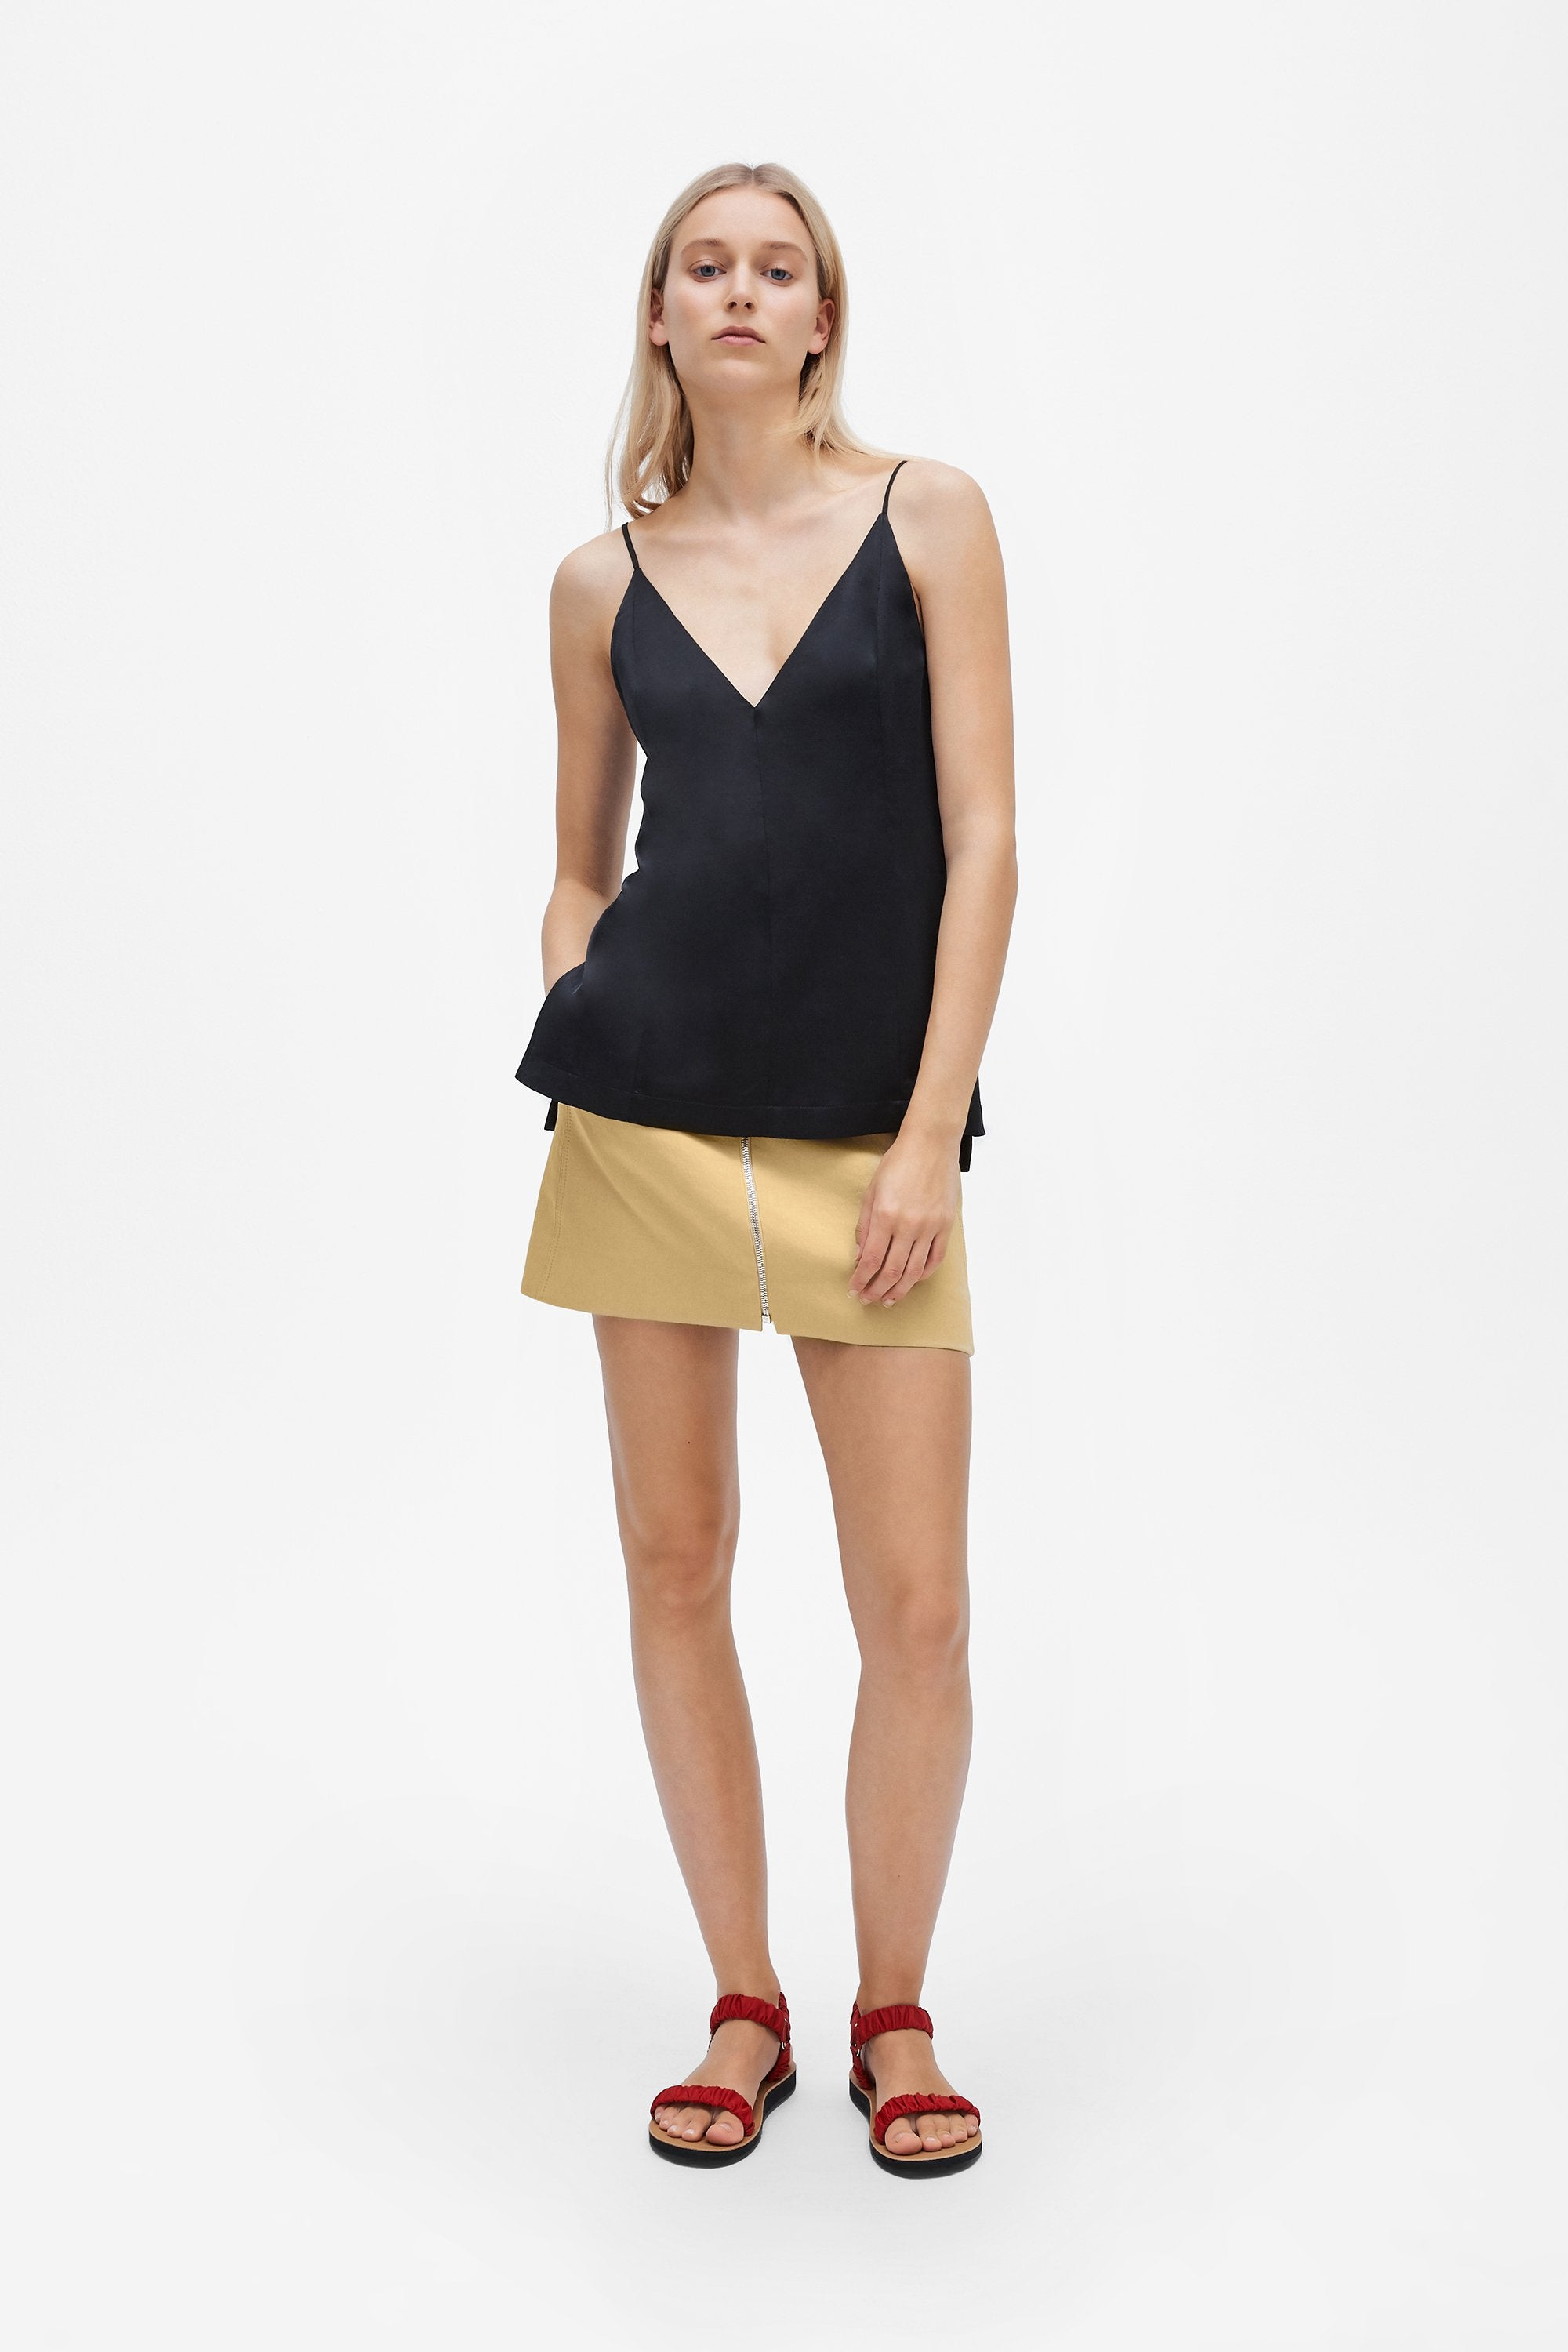 Split camisole top - Sandwashed silk satin - Black - Resortwear top - Her Line